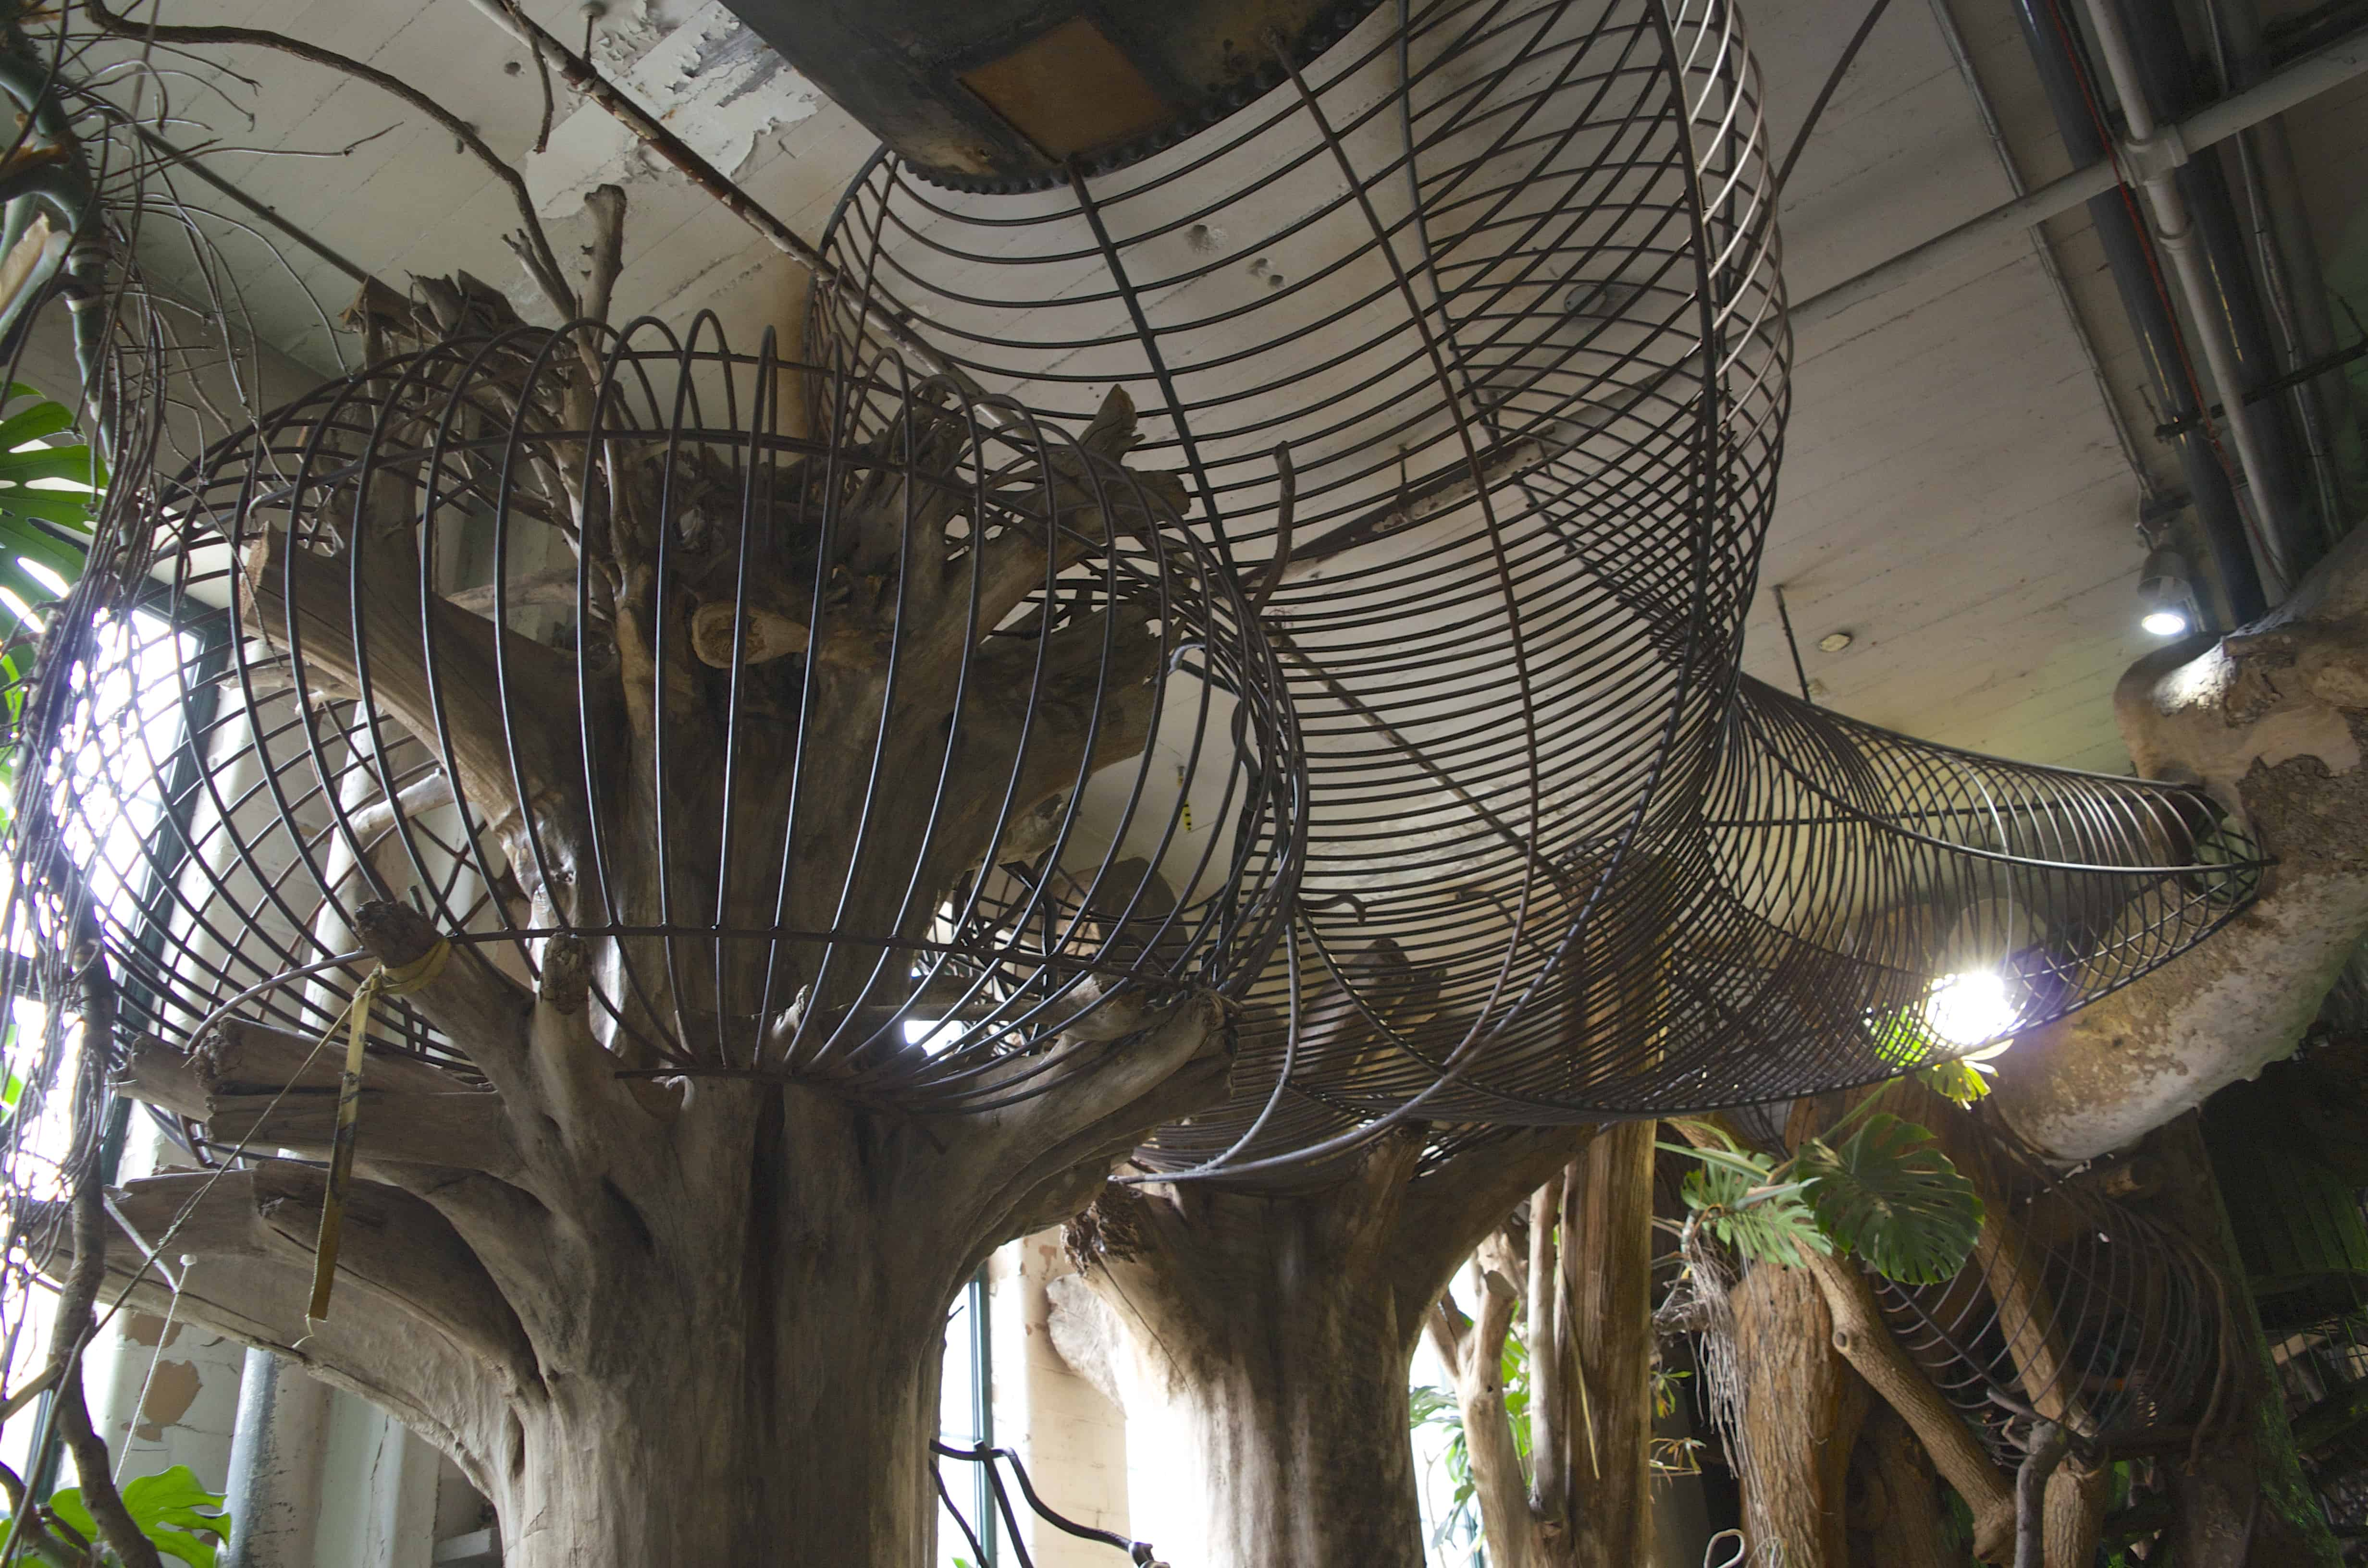 wire treehouse in the City Museum in St. Louis, Missouri